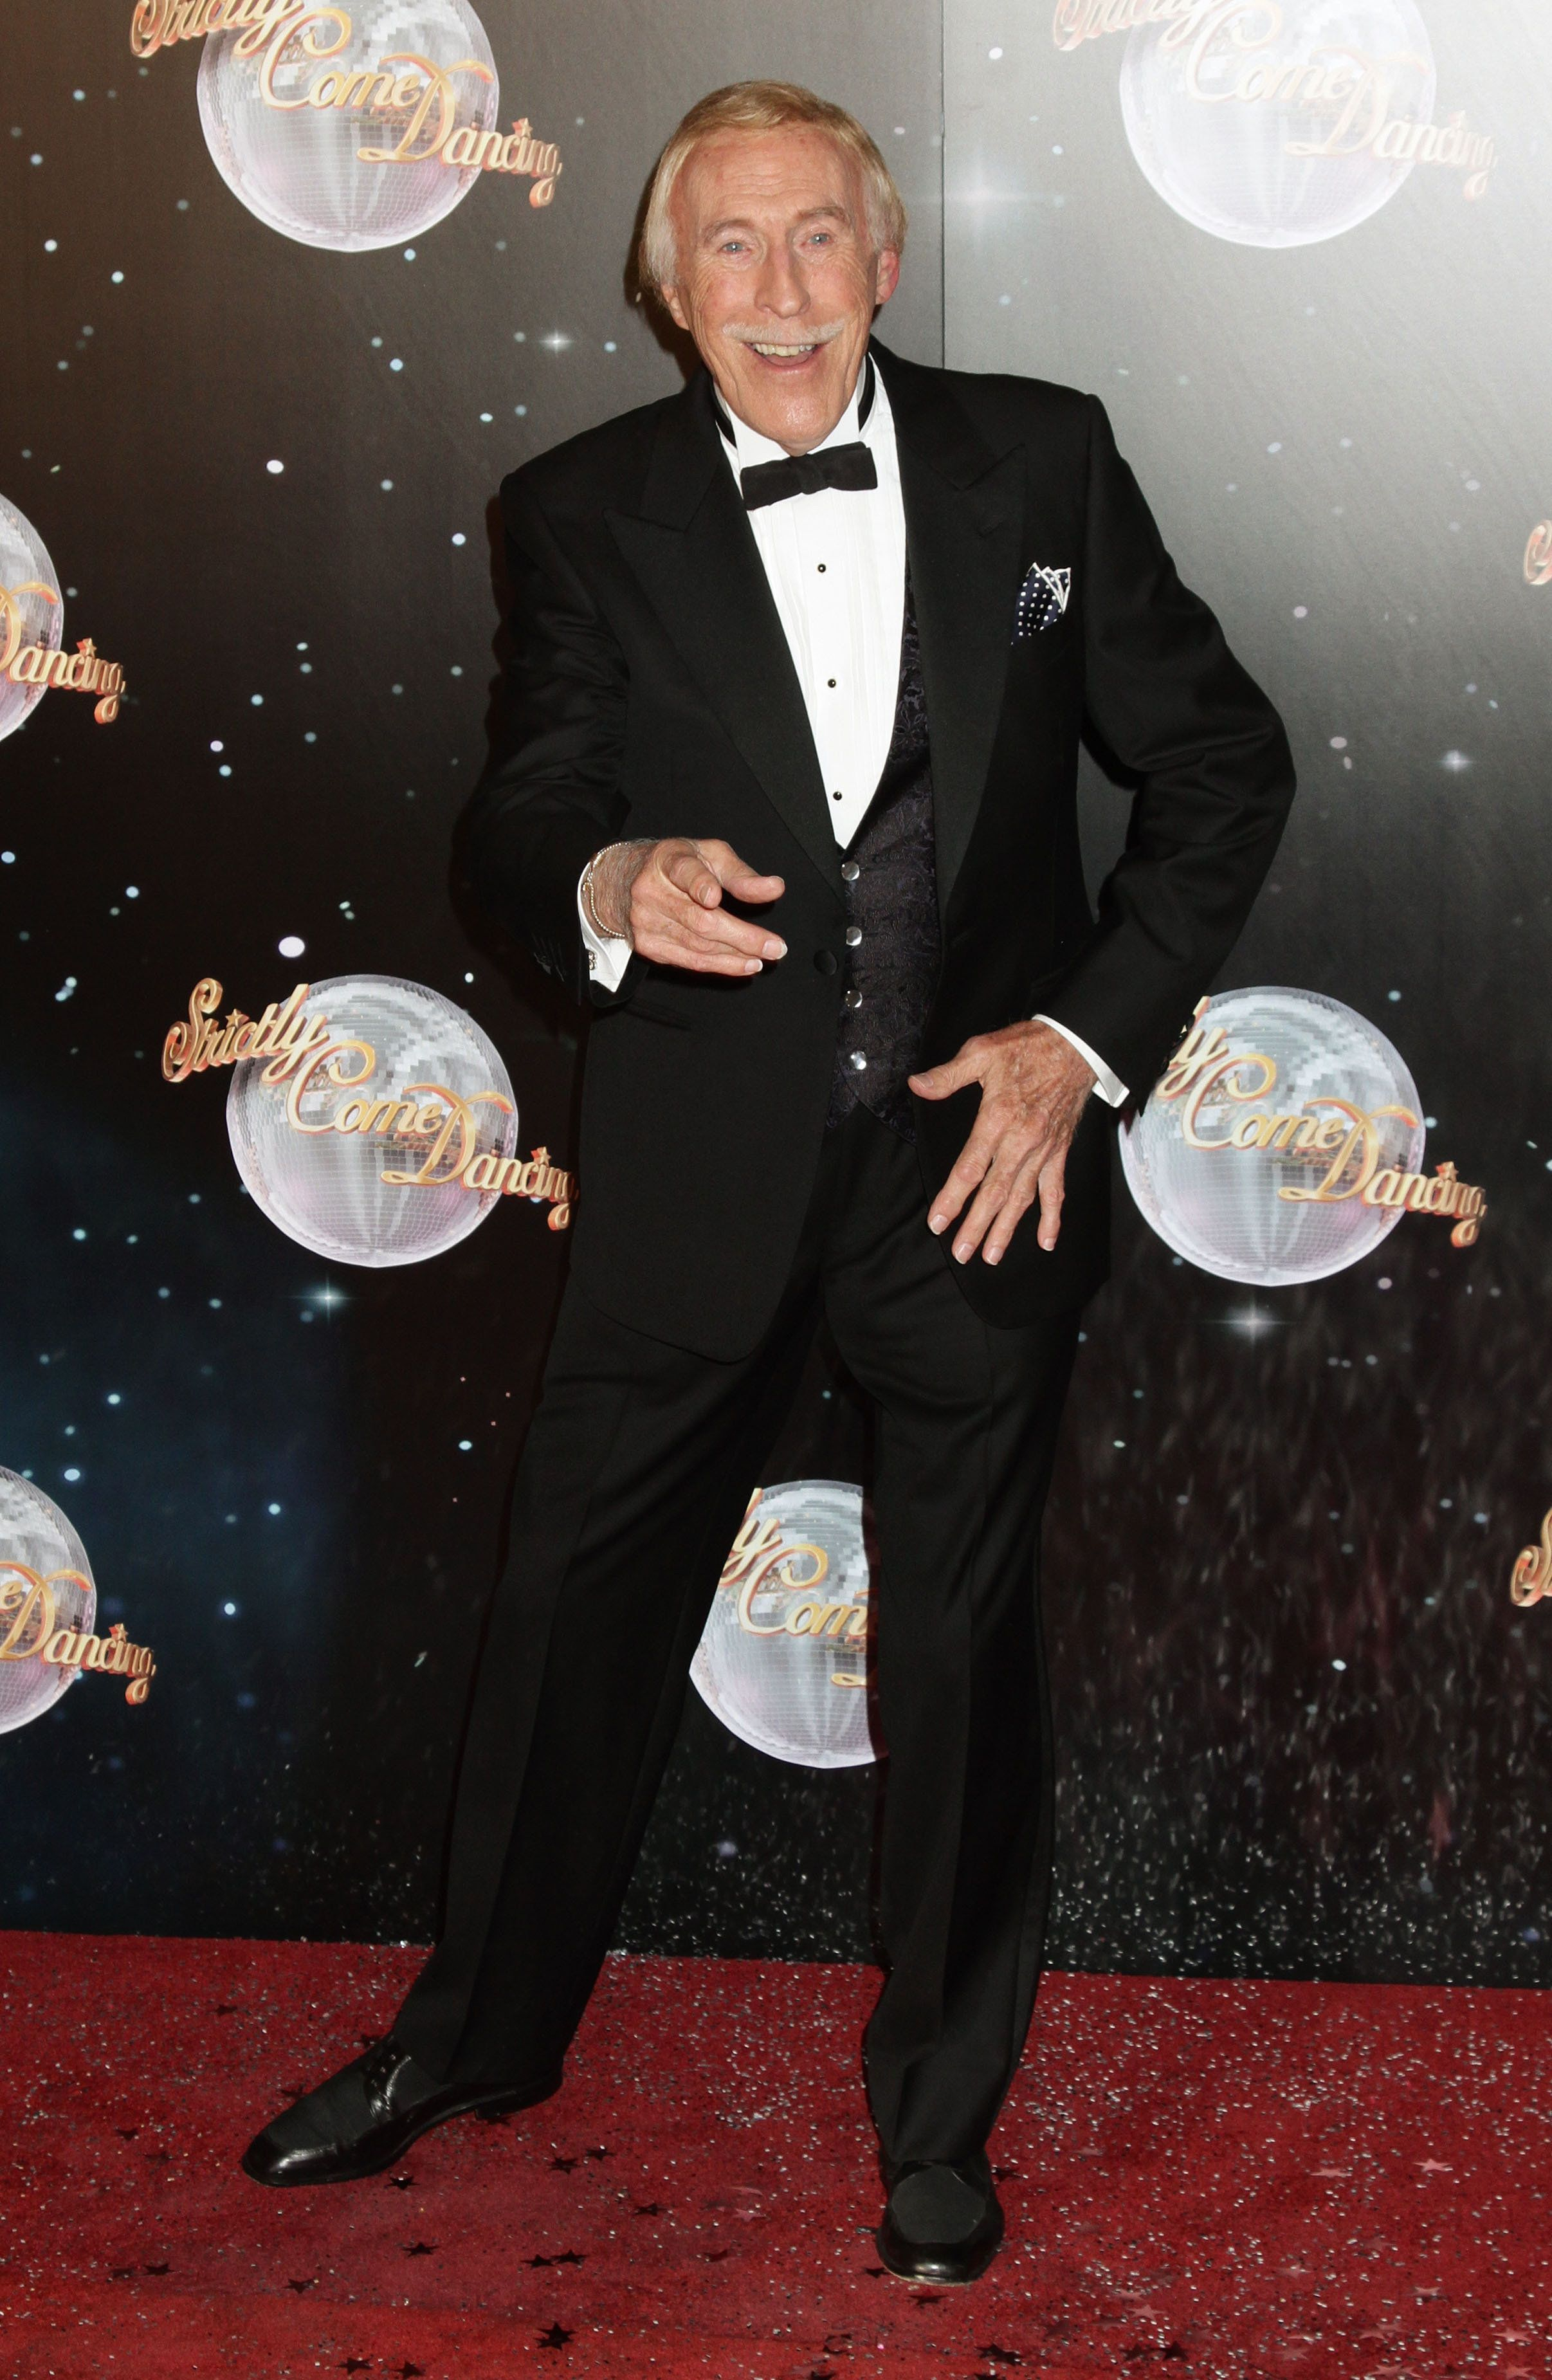 'Strictly Come Dancing' Pros Planning Fitting Bruce Forsyth Tribute On Launch